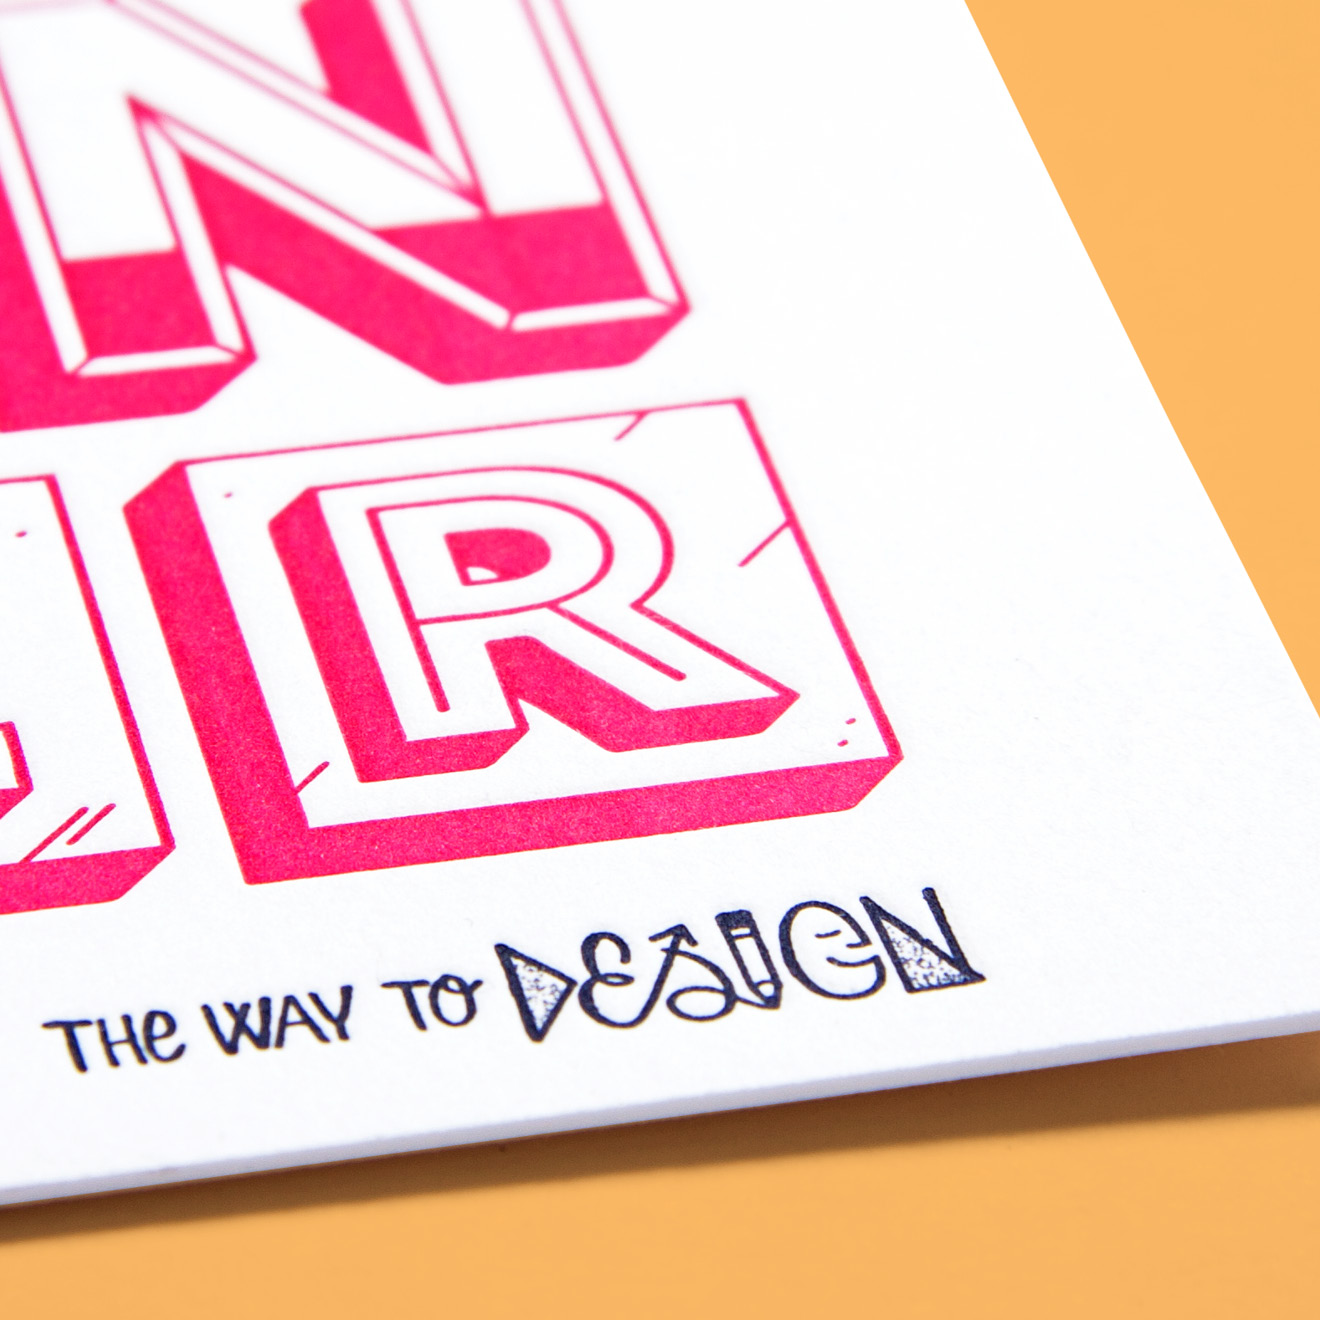 The Way To Design typography design